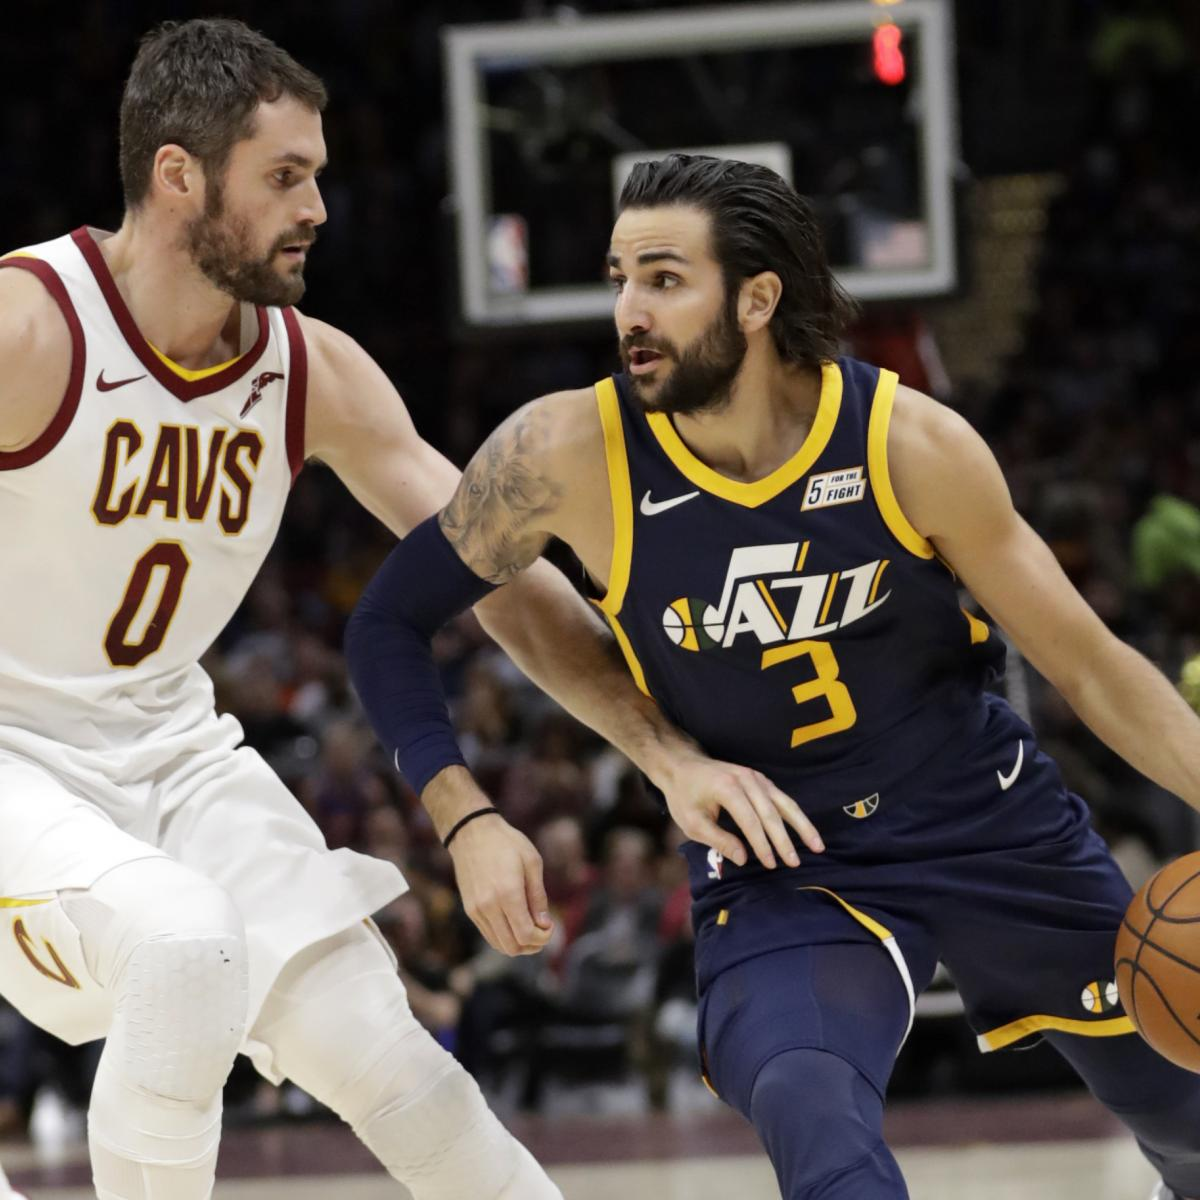 Cavs Trade Ideas to Help Maximize Kevin Love in Post-LeBron Era